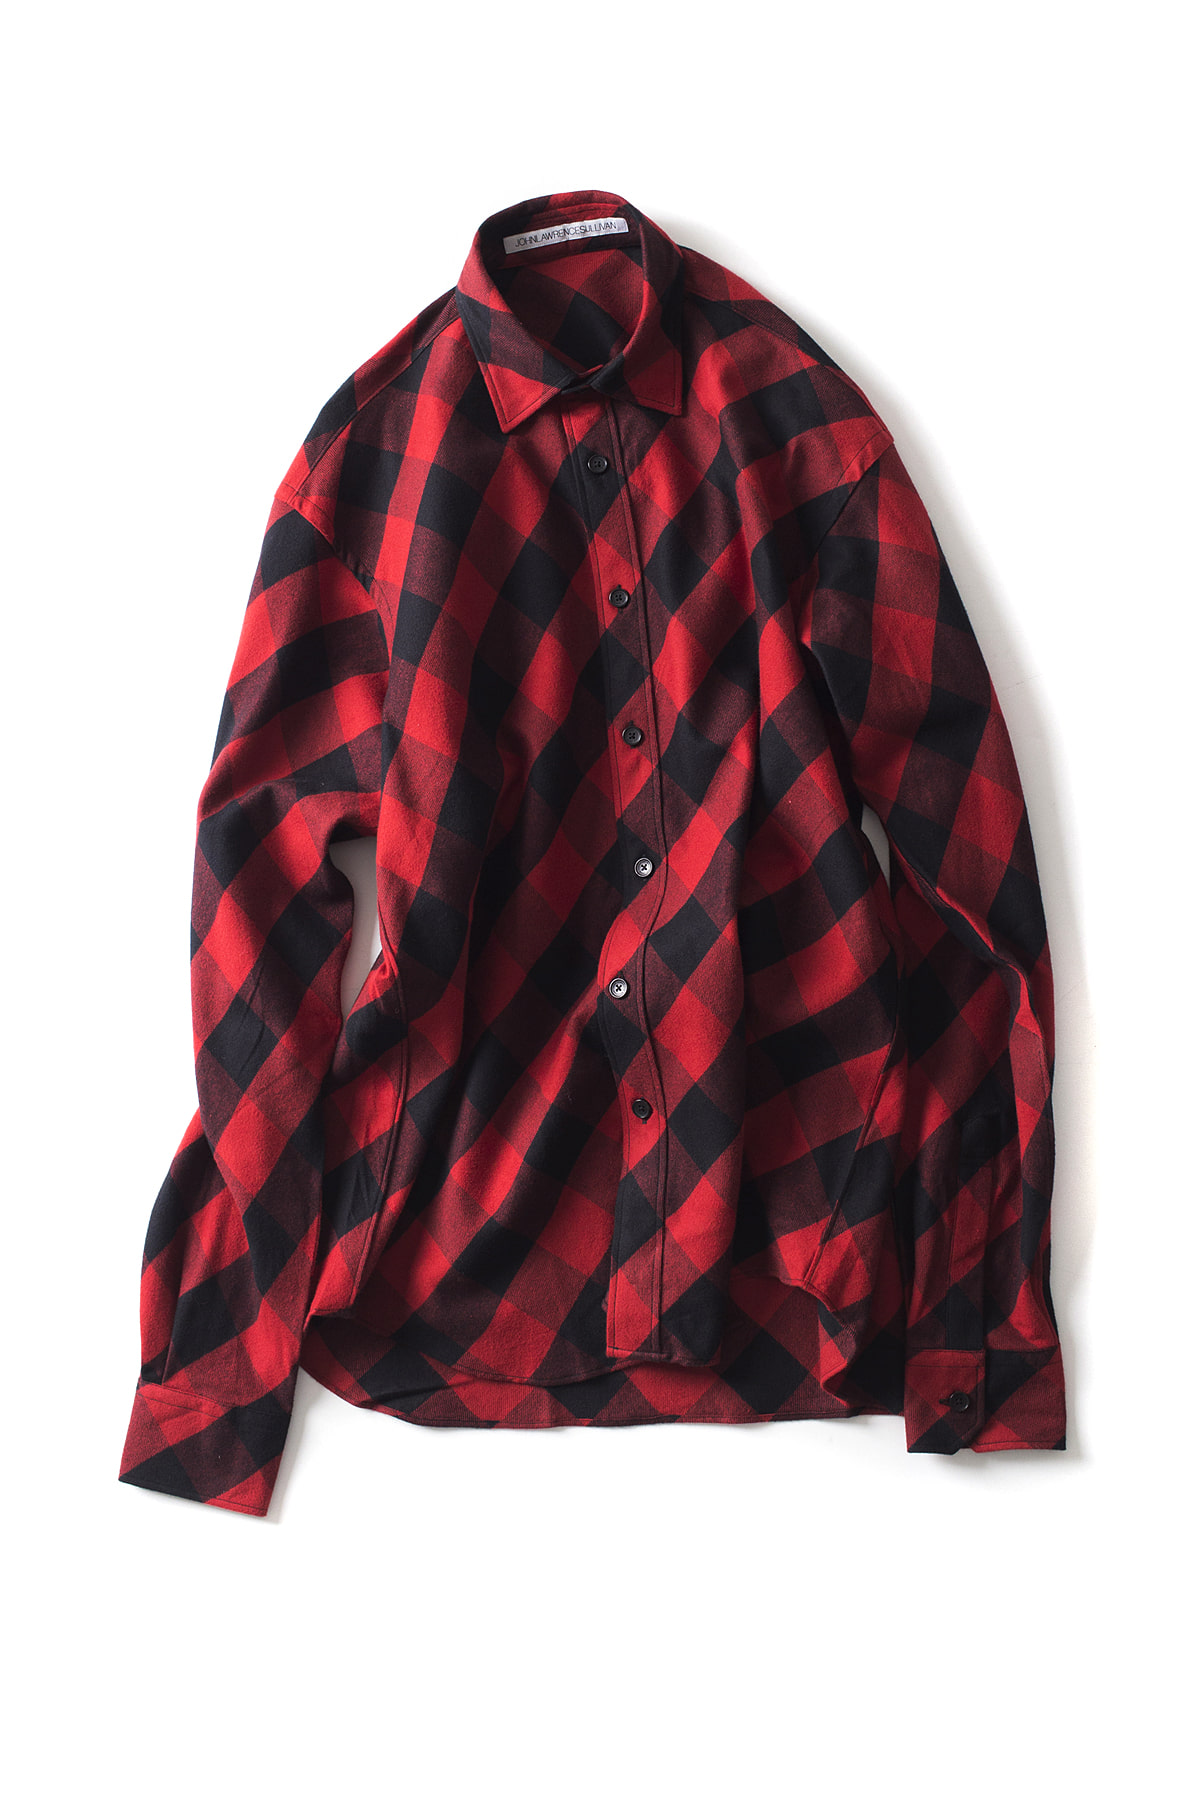 JOHN LAWRENCE SULLIVAN : Plaid Shirt (Red)